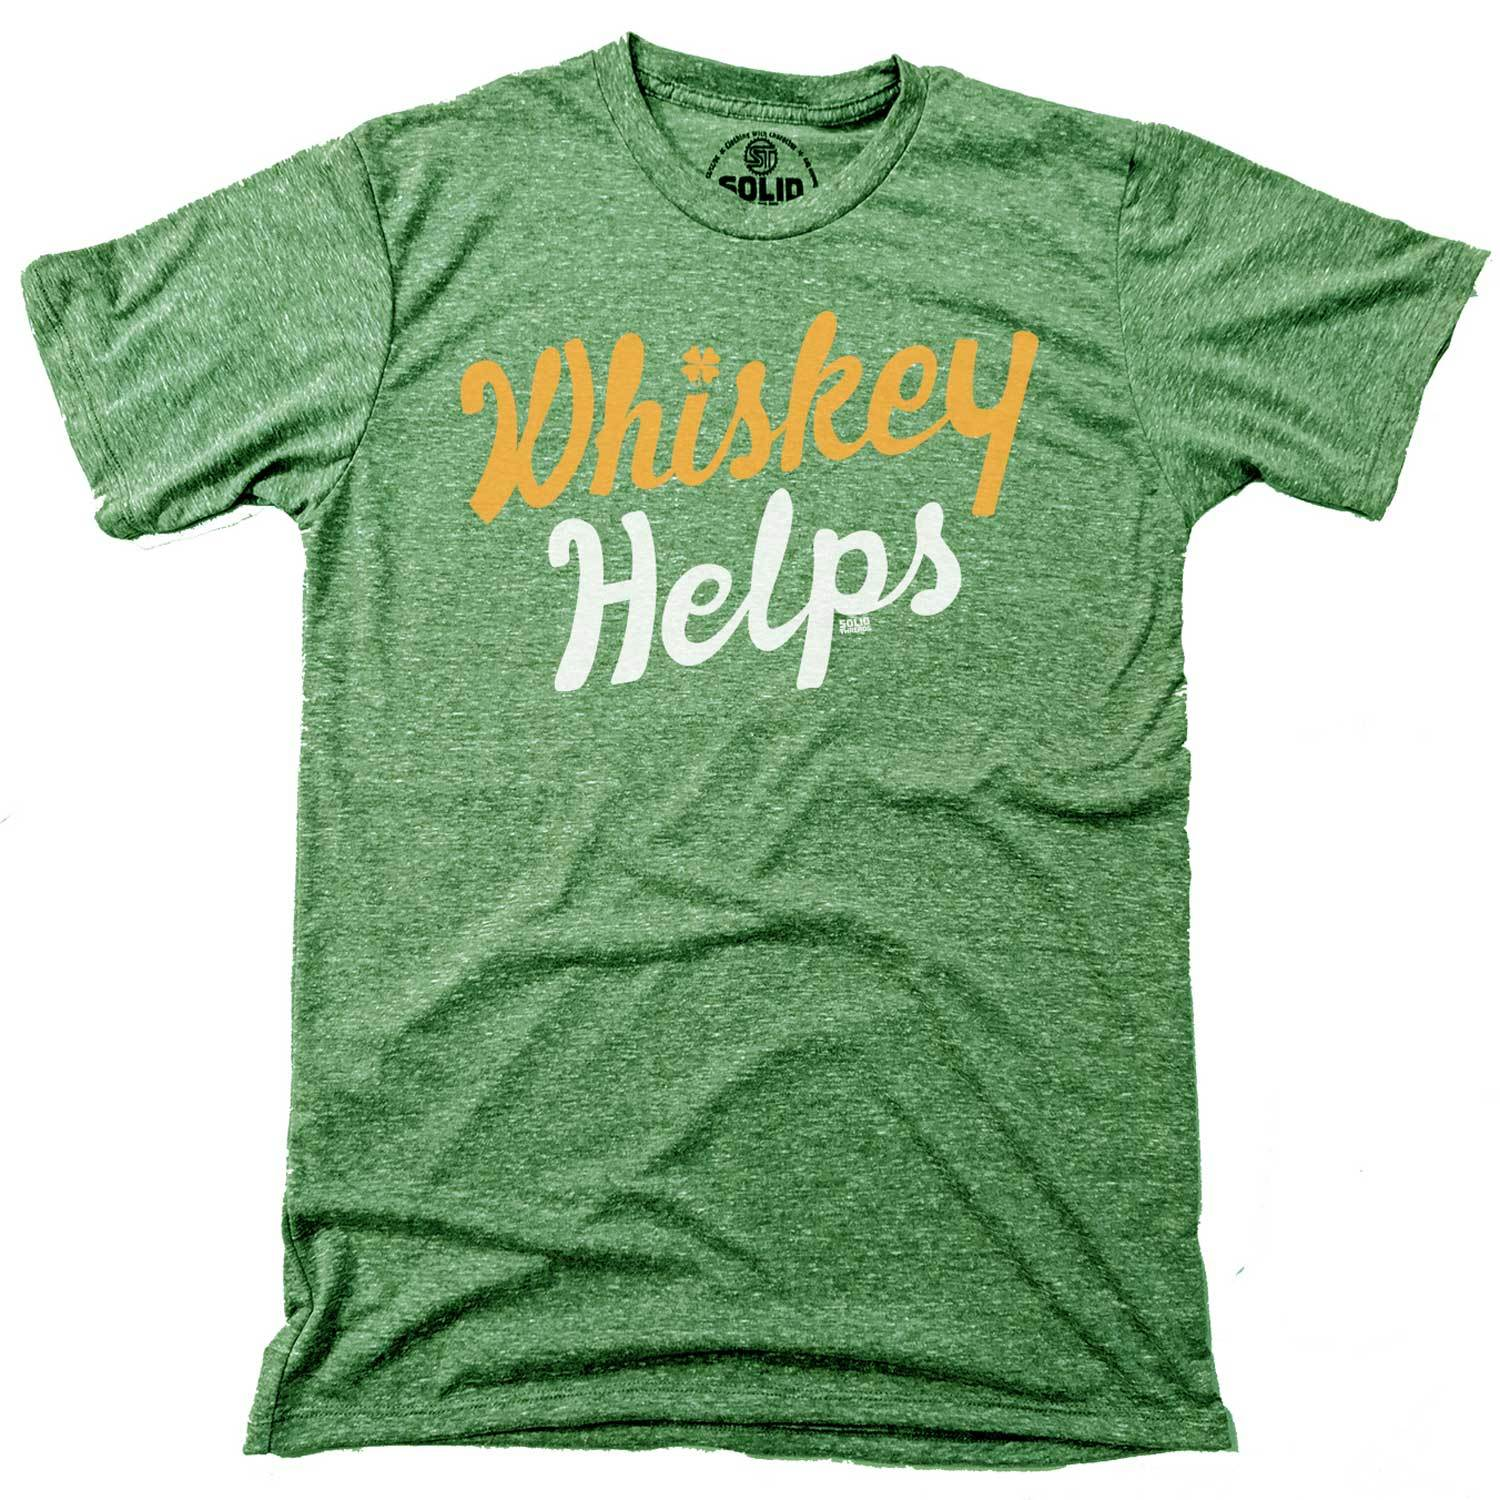 Men's Irish Whiskey Helps Vintage Inspired T-shirt with cool, St. Paddy's graphic | Solid Threads